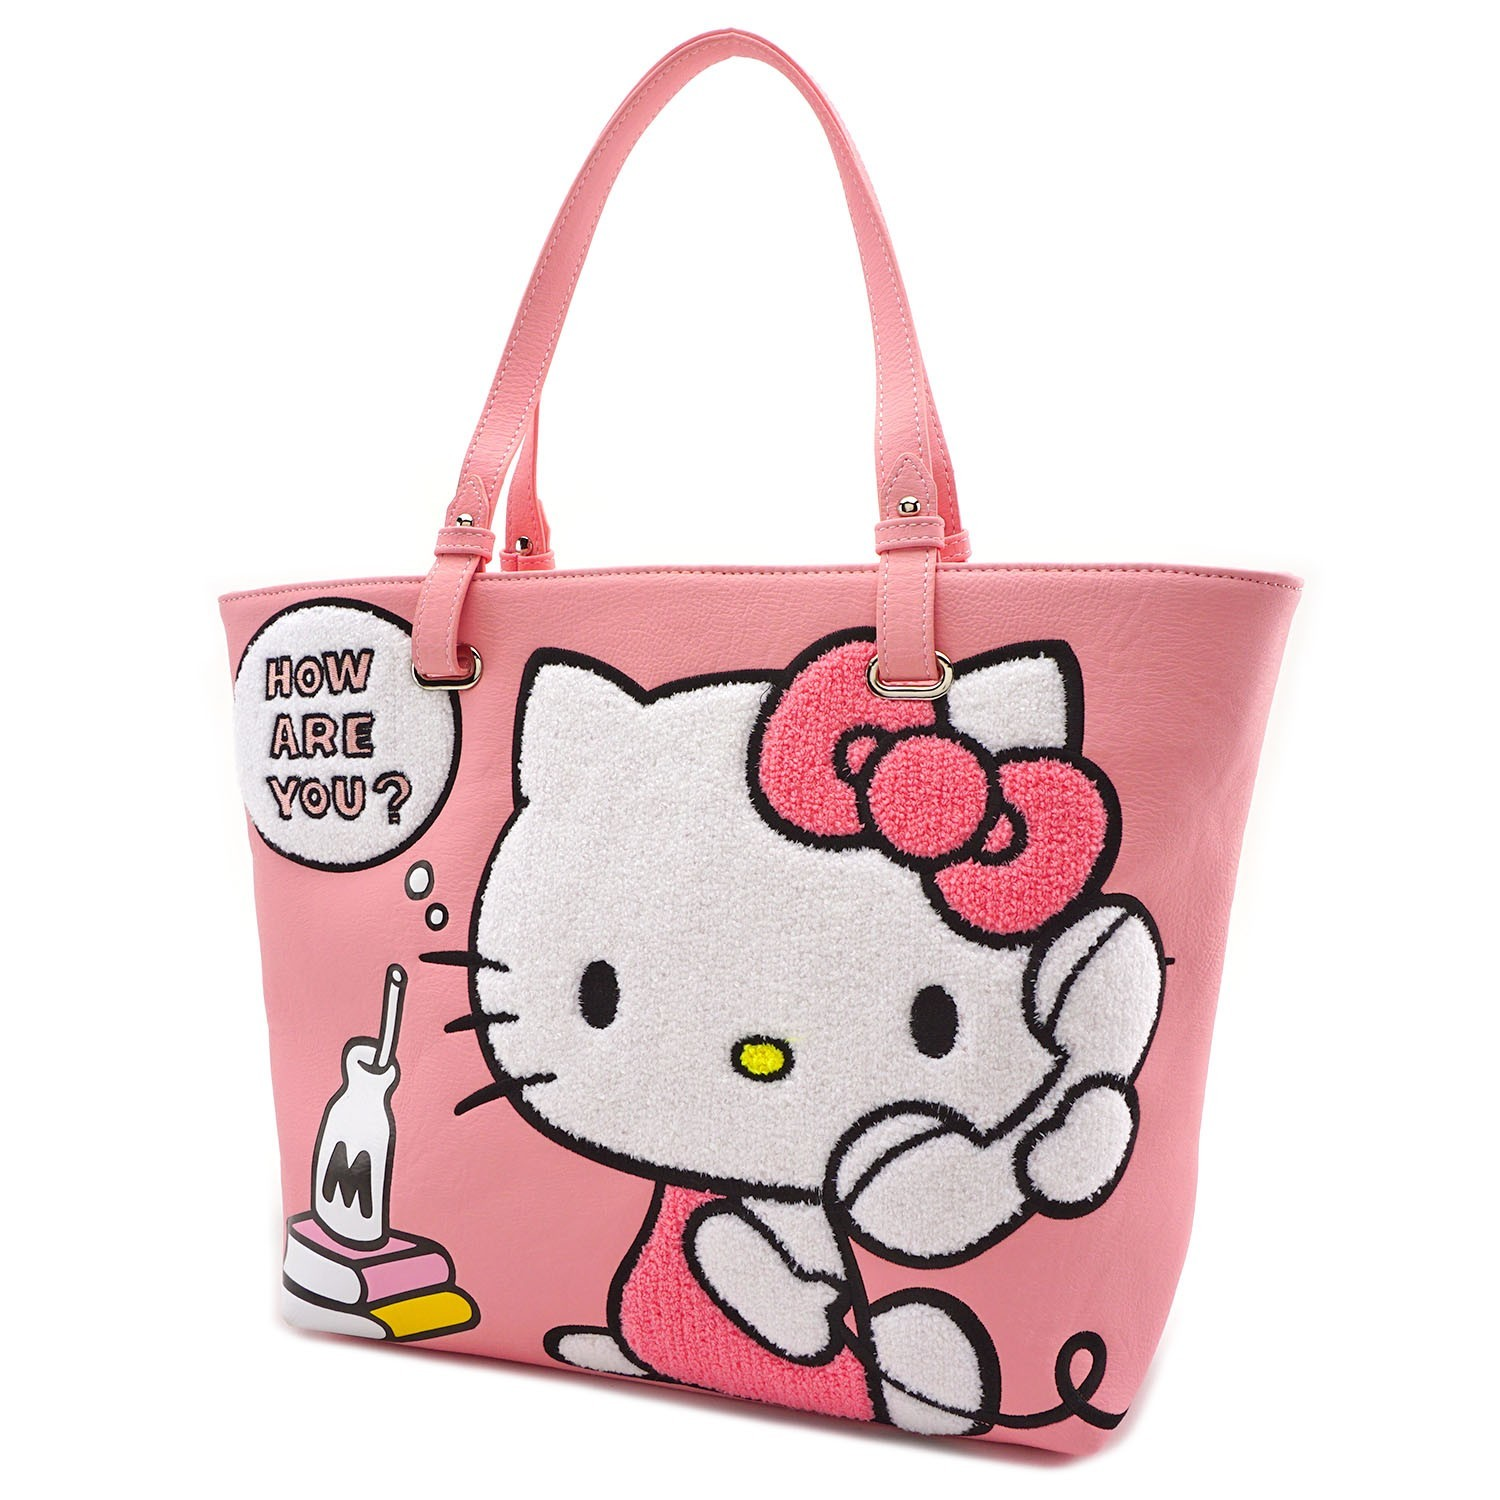 dd027692e Loungefly: Hello Kitty - How Are You Pink Tote Bag | Women's | at ...